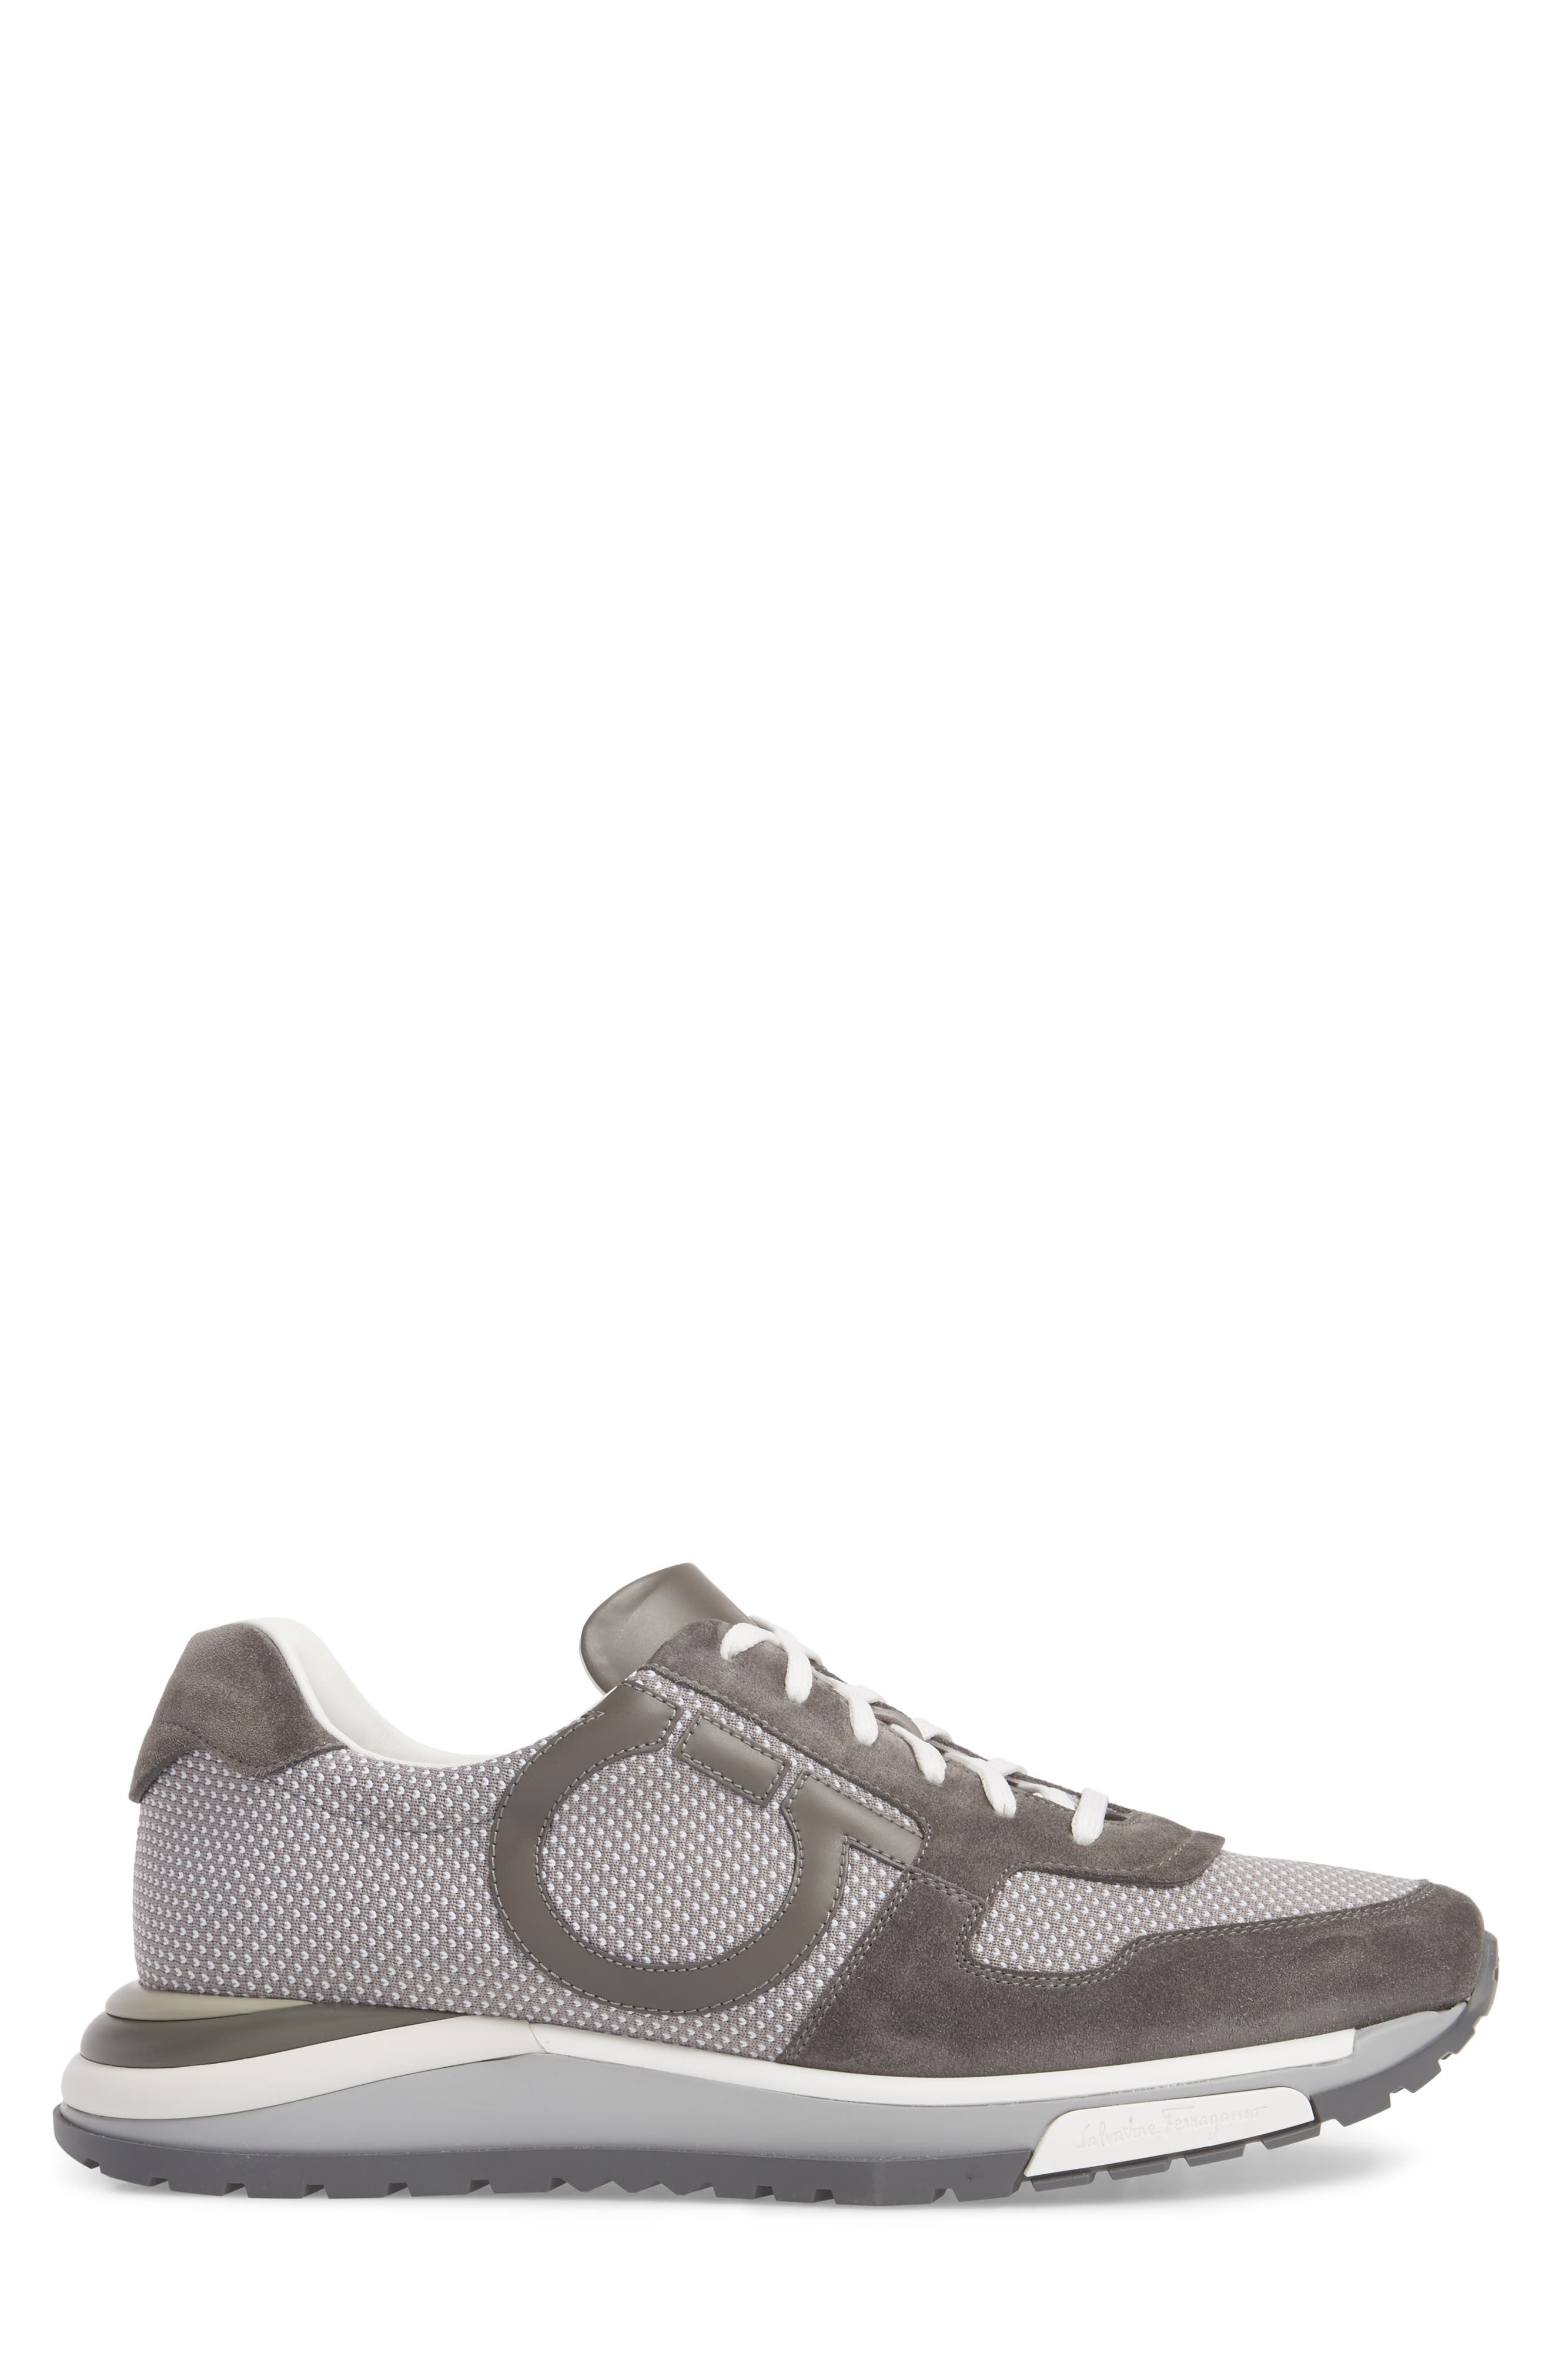 Brooklyn 2 Woven Sneaker,                             Alternate thumbnail 3, color,                             Grey